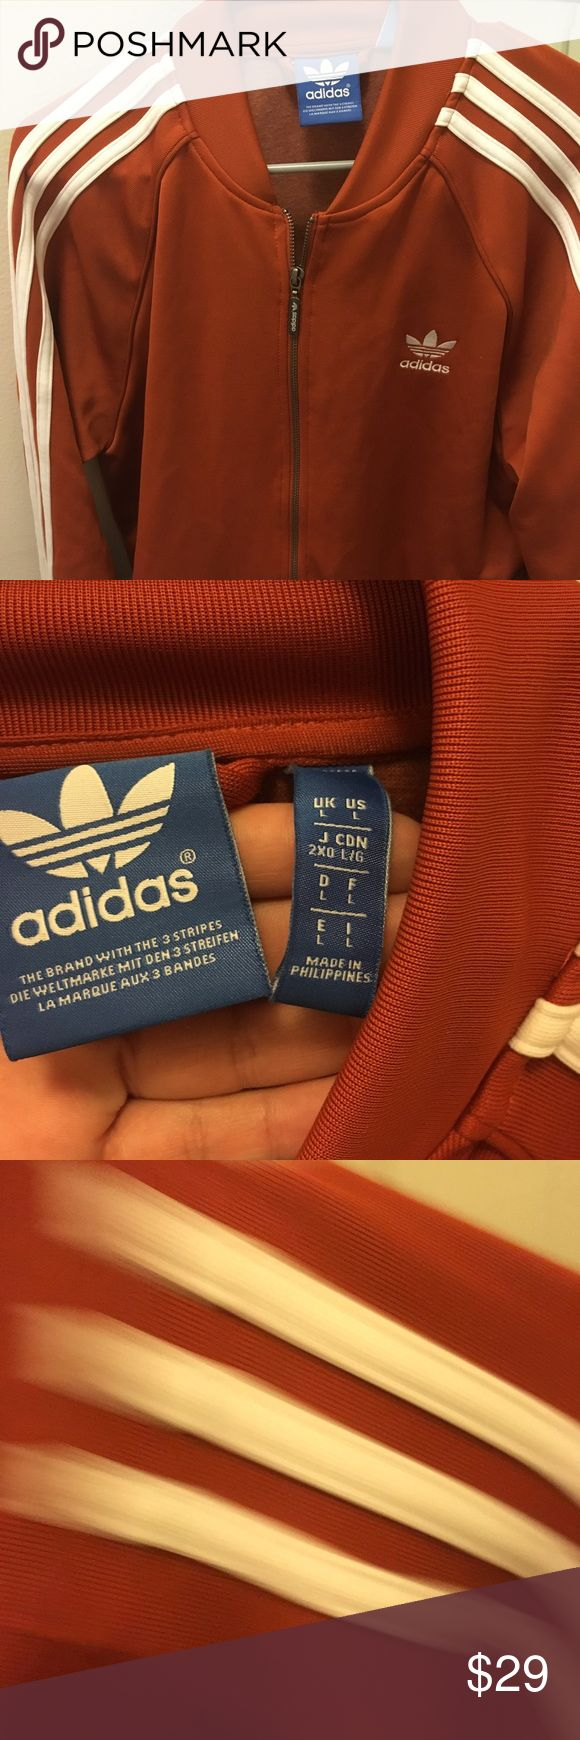 Adidas track jacket This is a light adidas jacket. It is a knit, not a windbreaker material. The color is a more of an orangey red. adidas Jackets & Coats